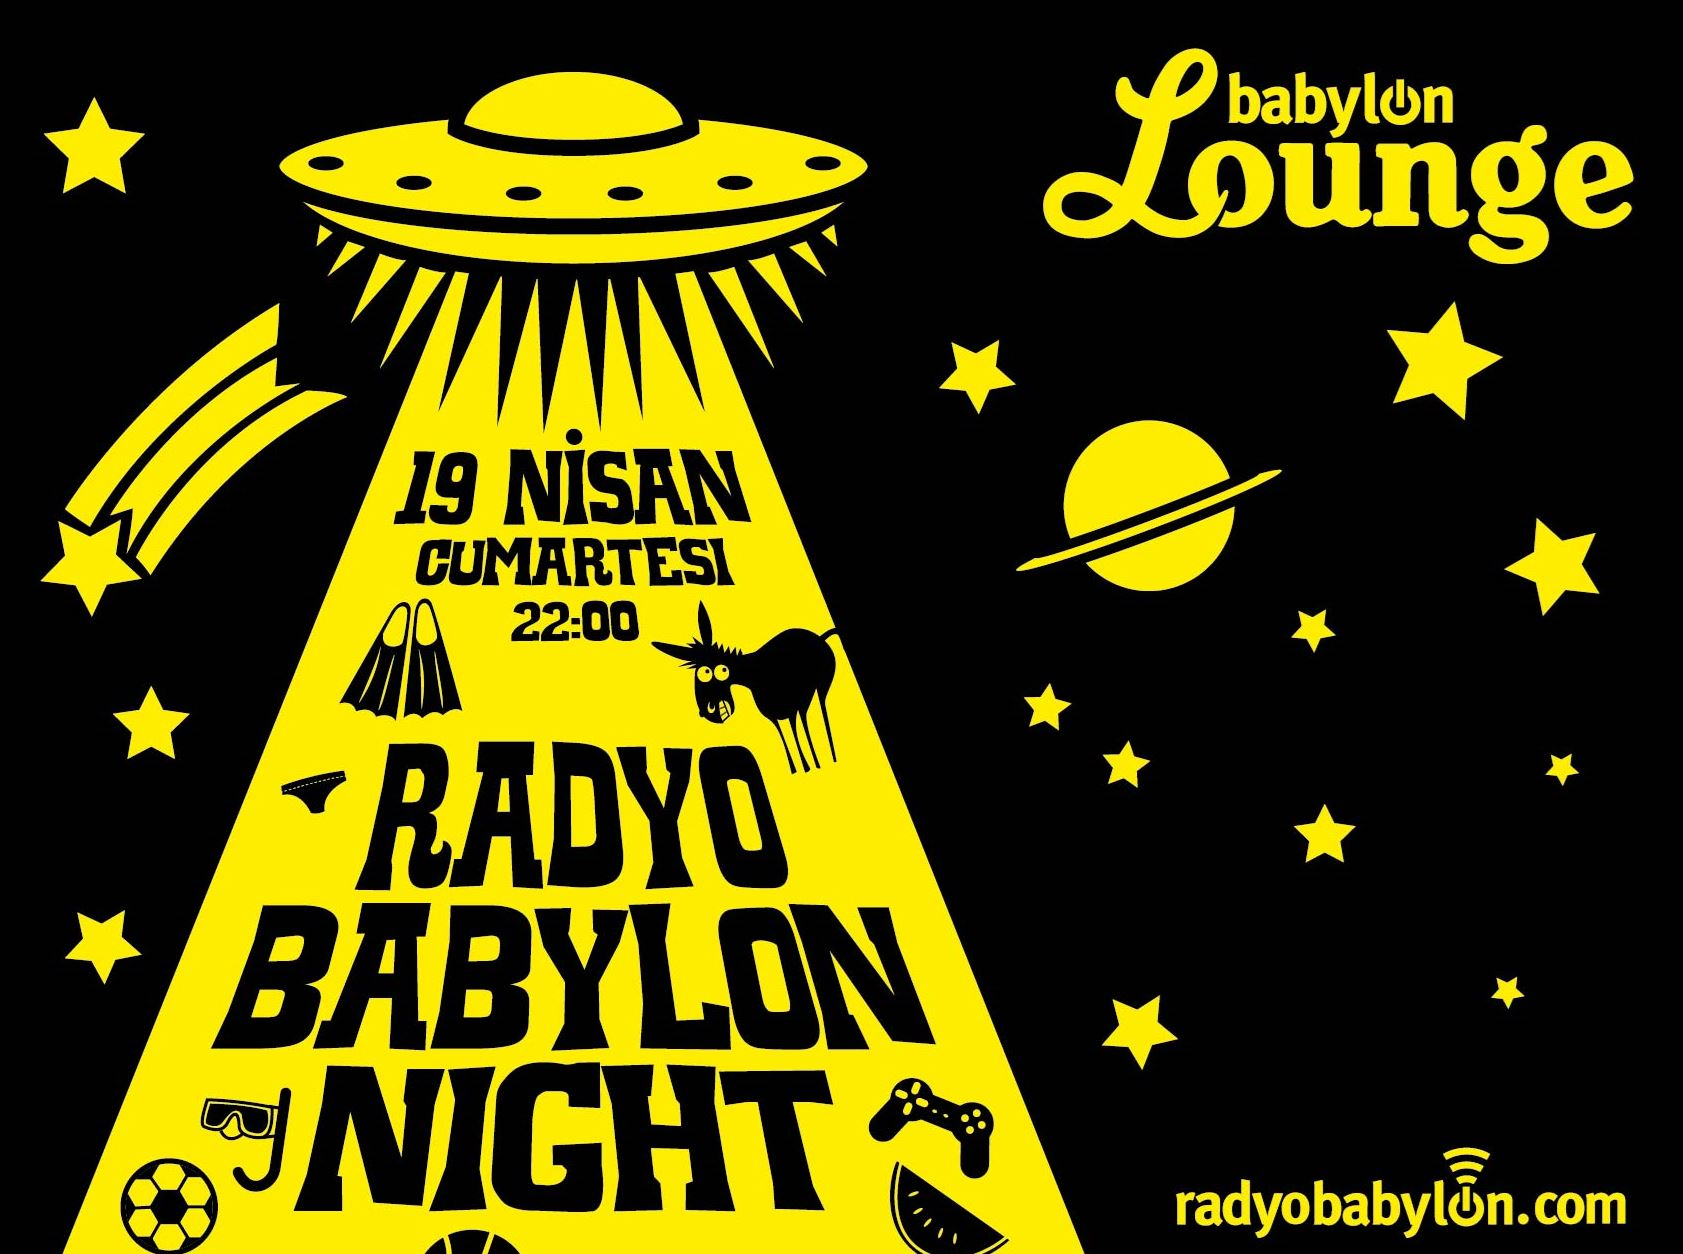 Radyo Babylon Night